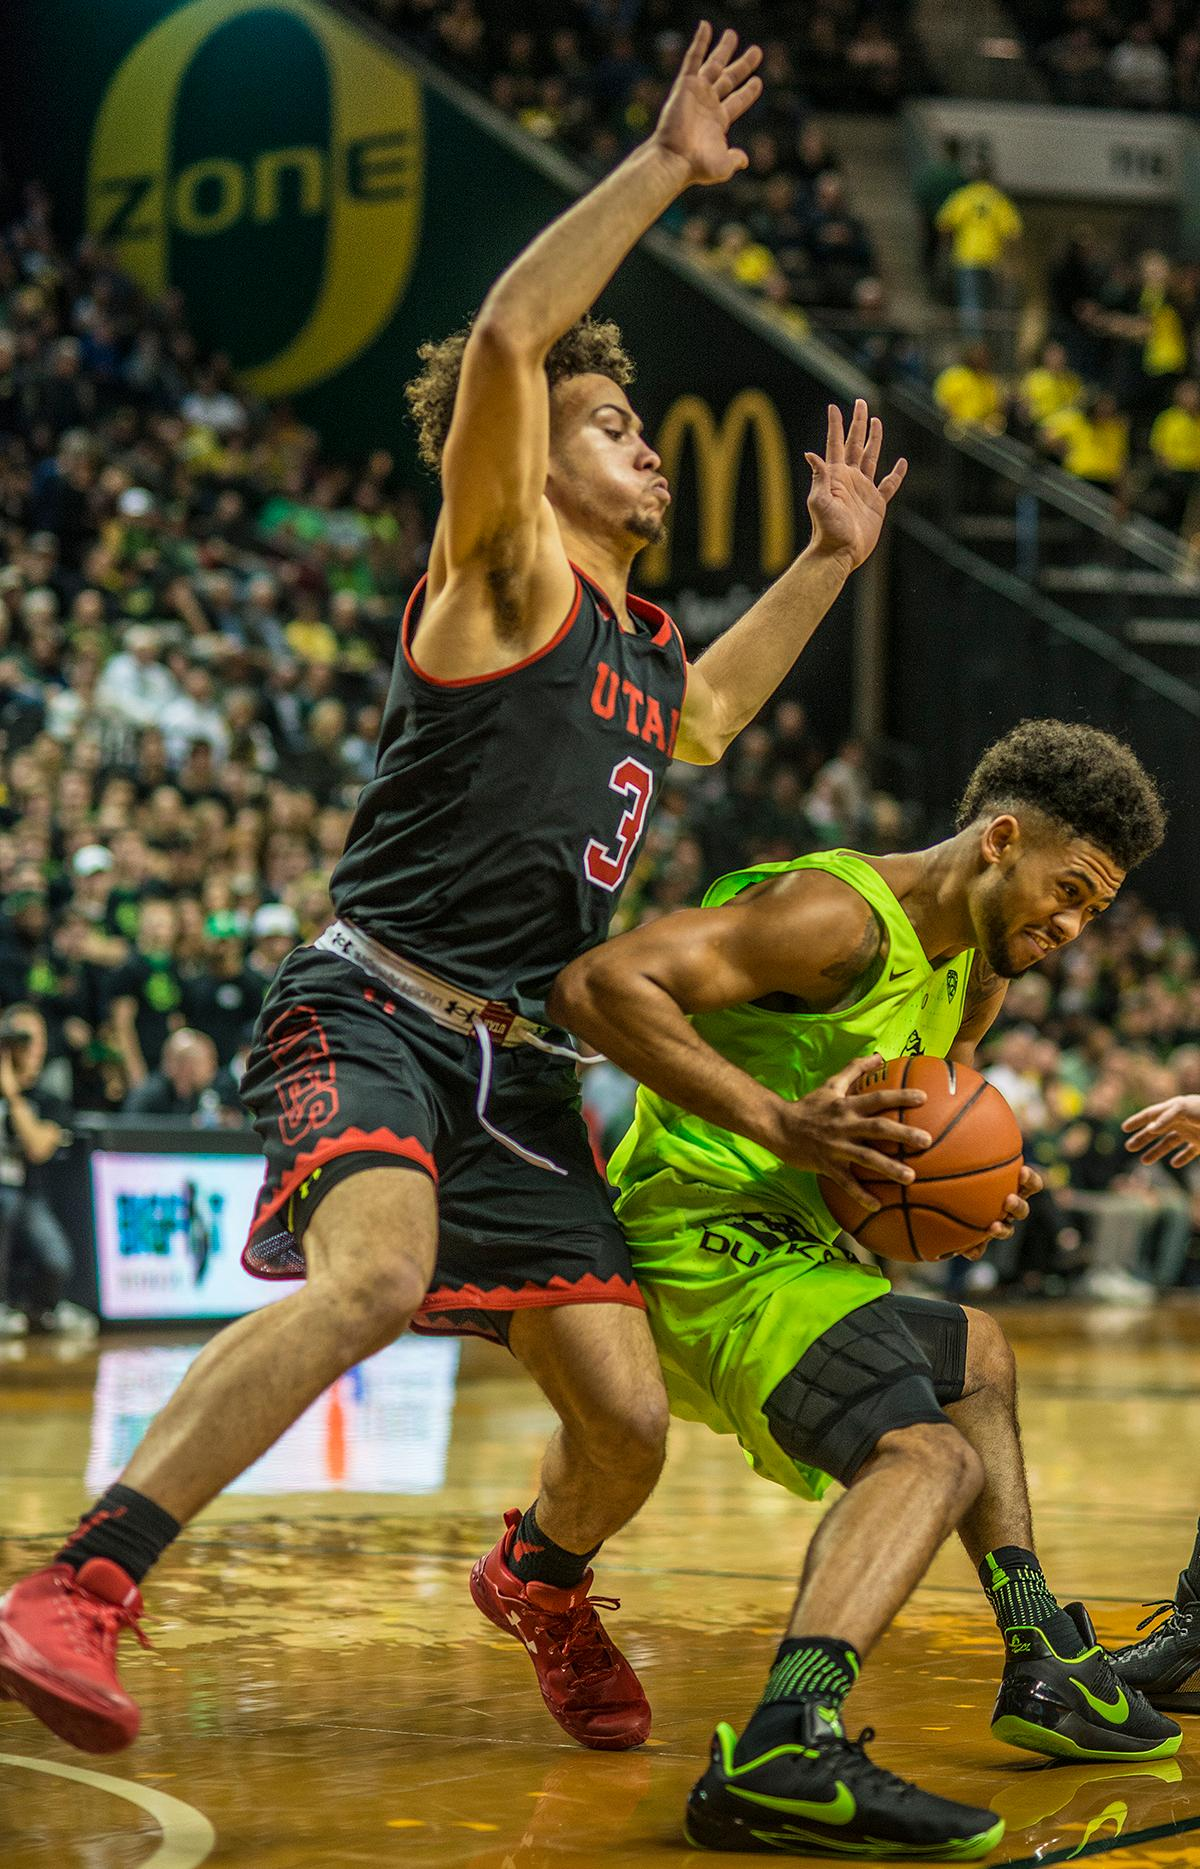 Oregon Ducks Tyler Dorsey (#5) attempts to make his way to the basket. The Oregon Ducks beat the Utah Utes 79-61 on Thursday night at Matthew Knight Arena. The victory was the 41st consecutive win for the Ducks at Matthew Knight. Dillon Brooks scored 20 points, Jordan Bell scored 17 points, and Tyler Dorsey ended the game with 16 points.  Photo by Rhianna Gelhart, Oregon News Lab